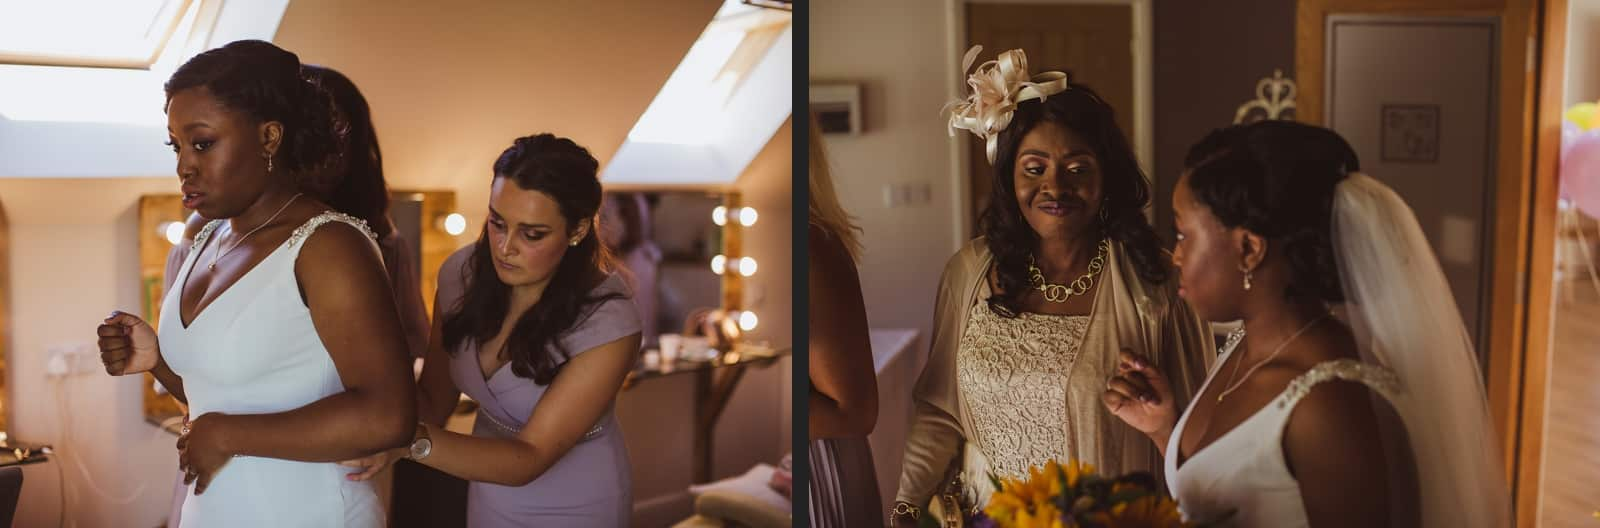 Cotswolds Wedding Photographer 0058